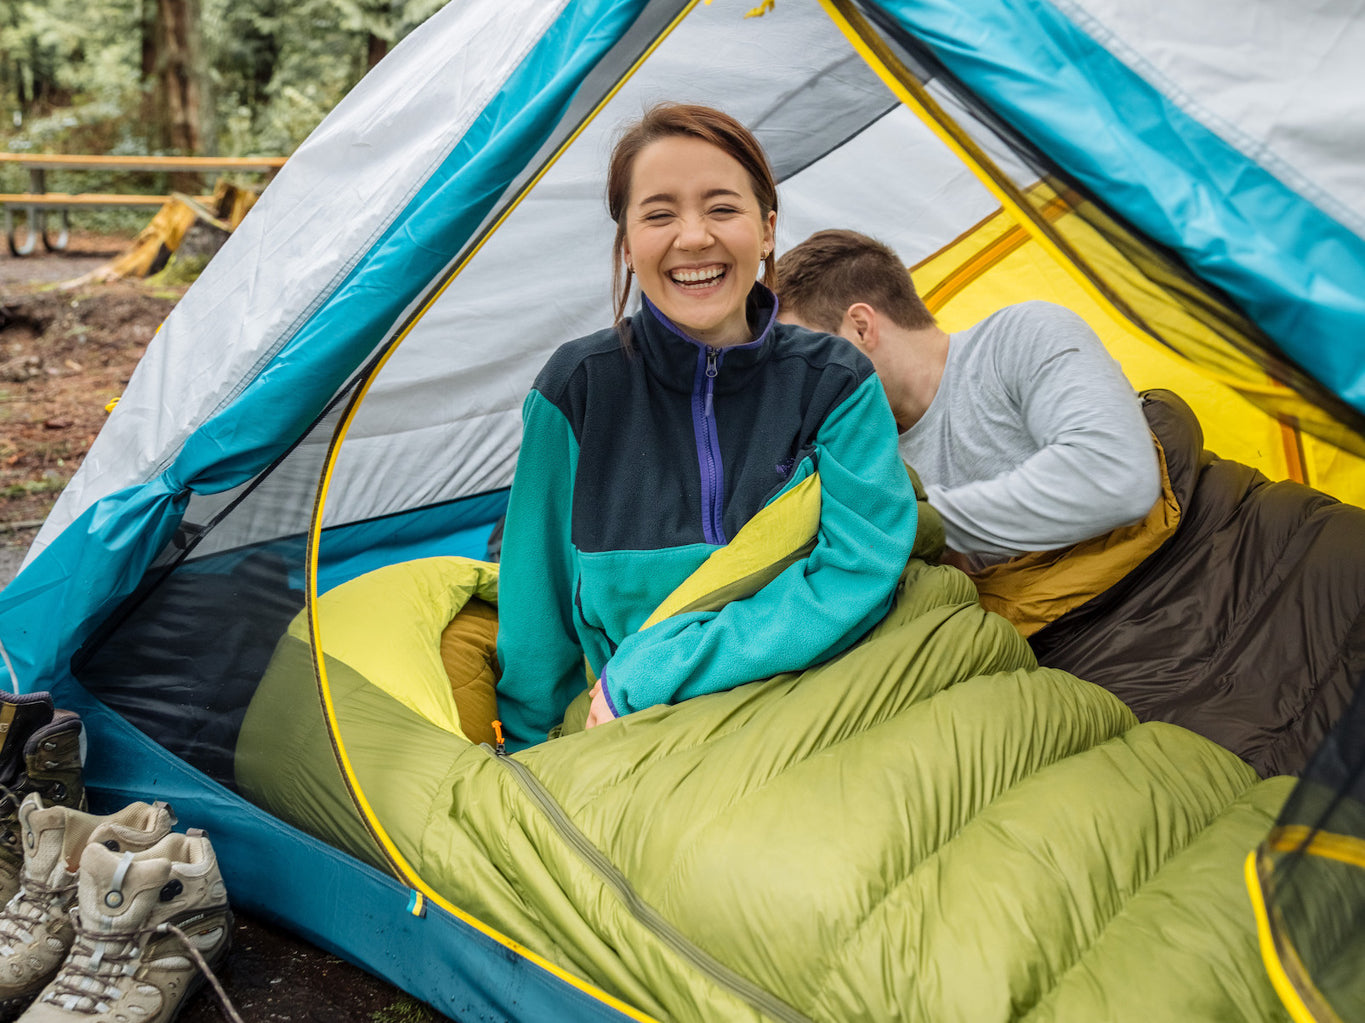 The Original Zenbivy Bed: Facts & Features